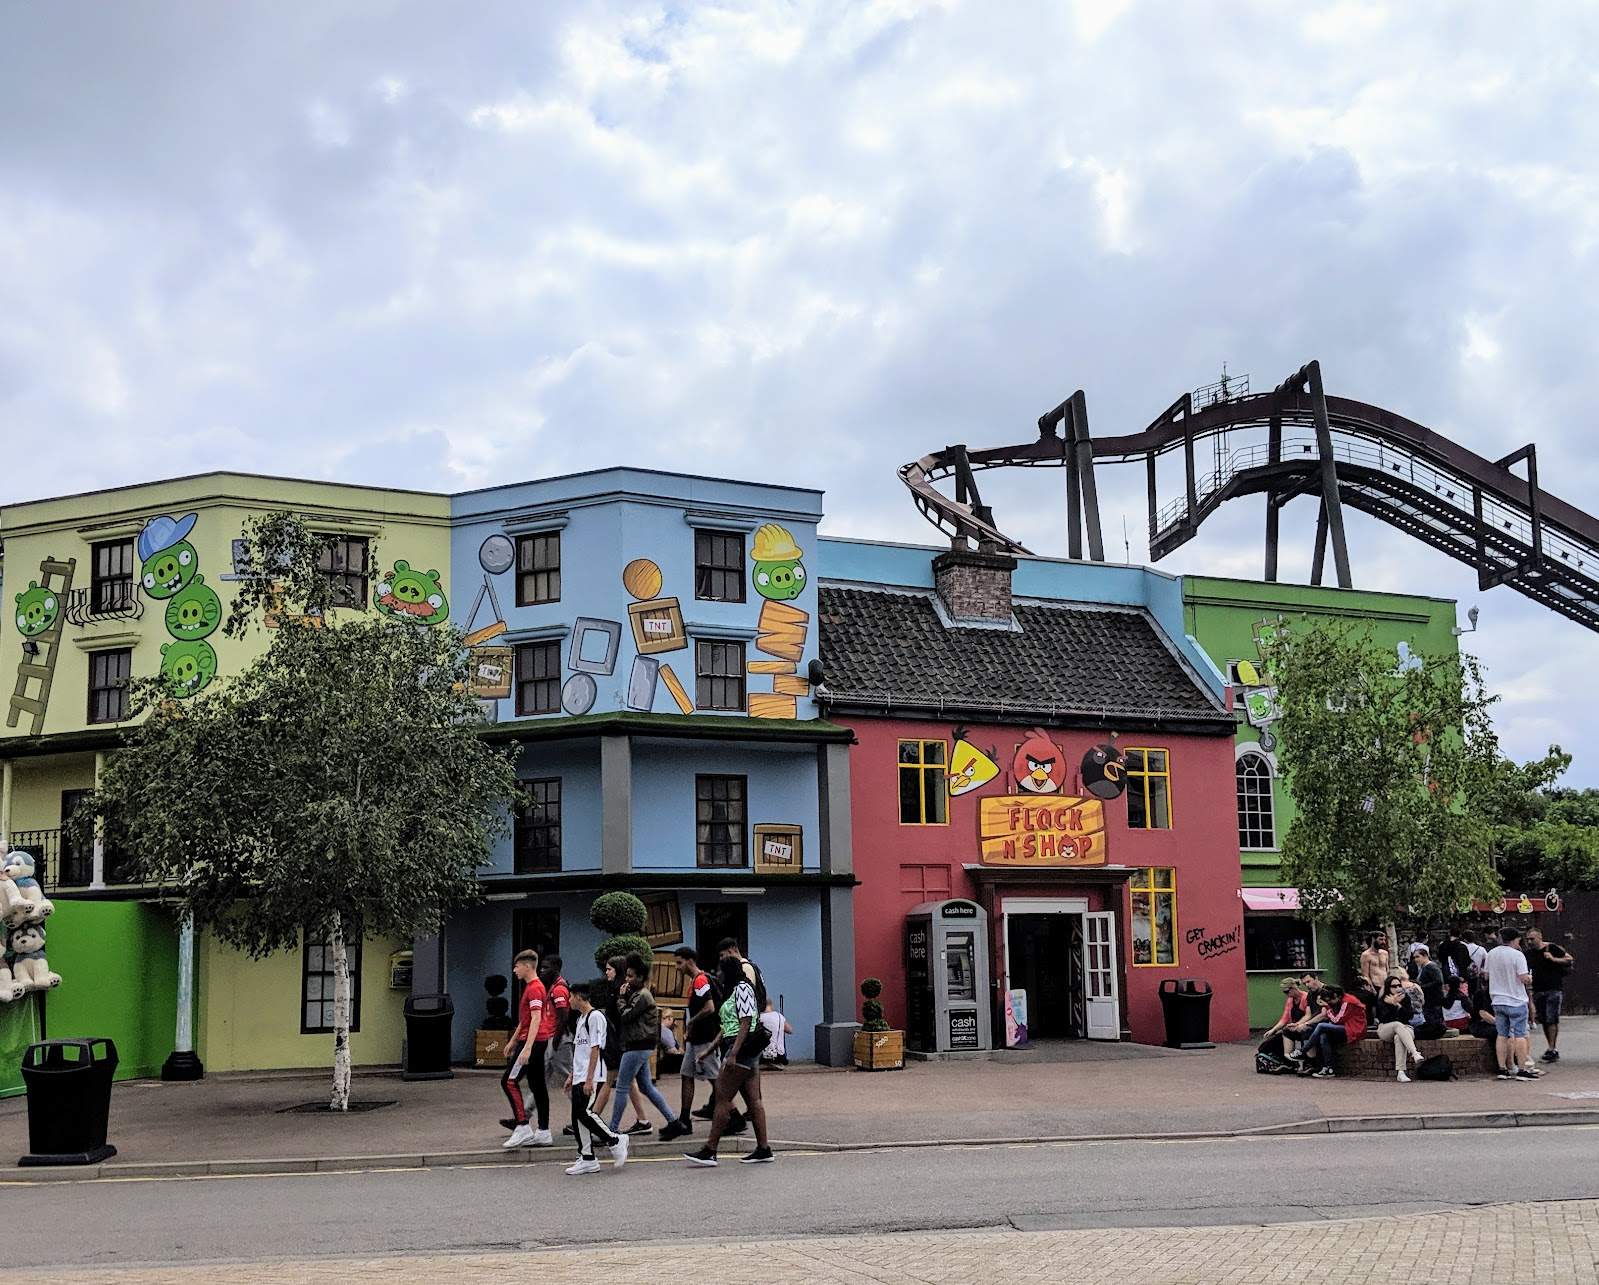 Exploring the Southern Merlin Theme Parks with Tweens  - Angry Bird Land at Thorpe Park